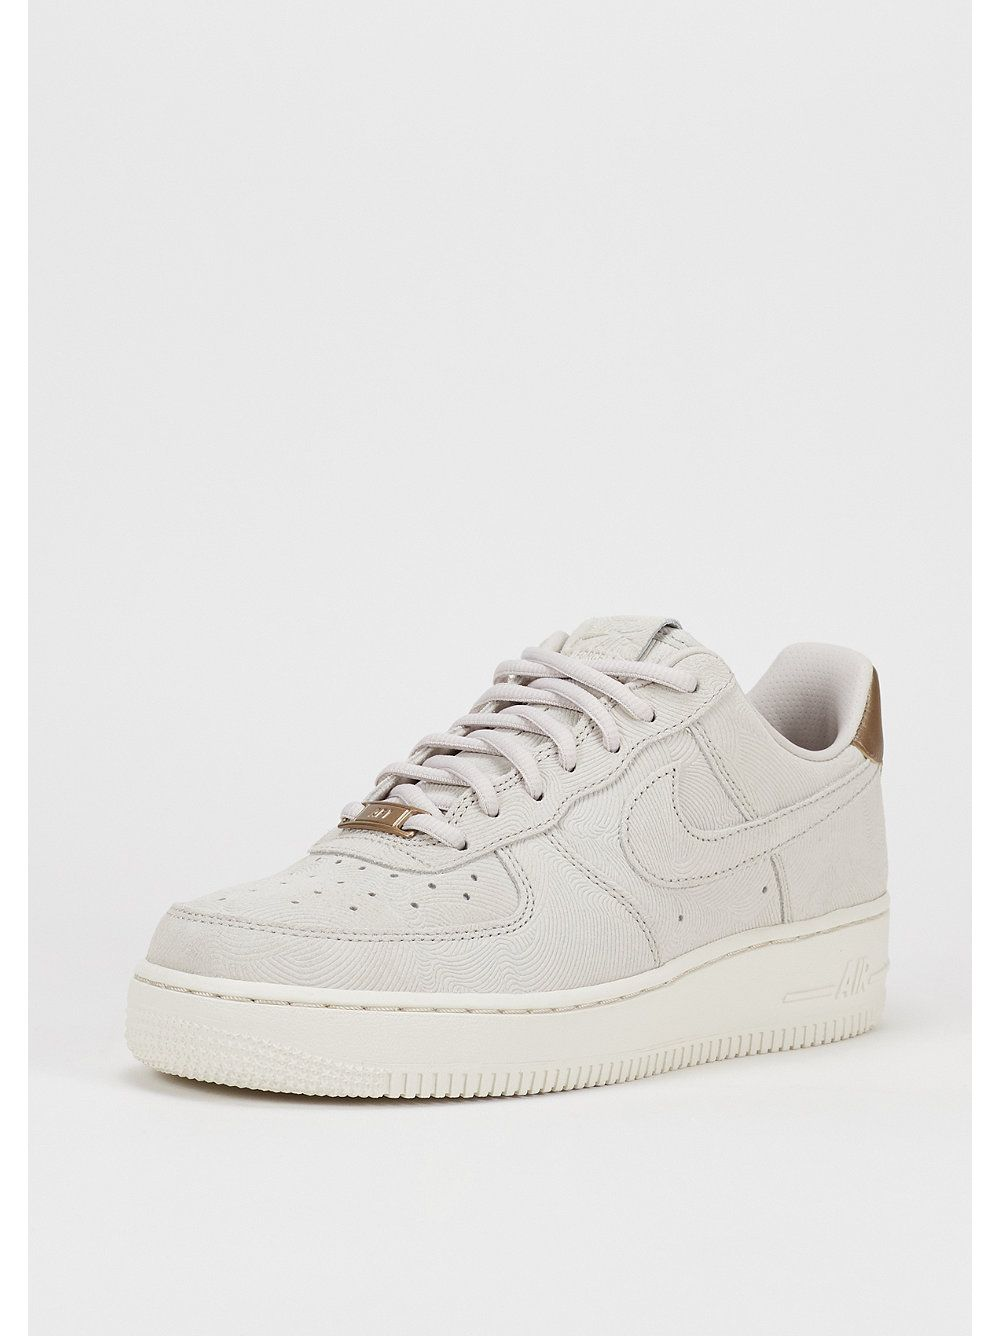 best website a26ad aea58 NIKE Schuh Wmns Air Force 1 07 Premium Suede gamma grey/gamma grey/Phantom  > perfect ♥